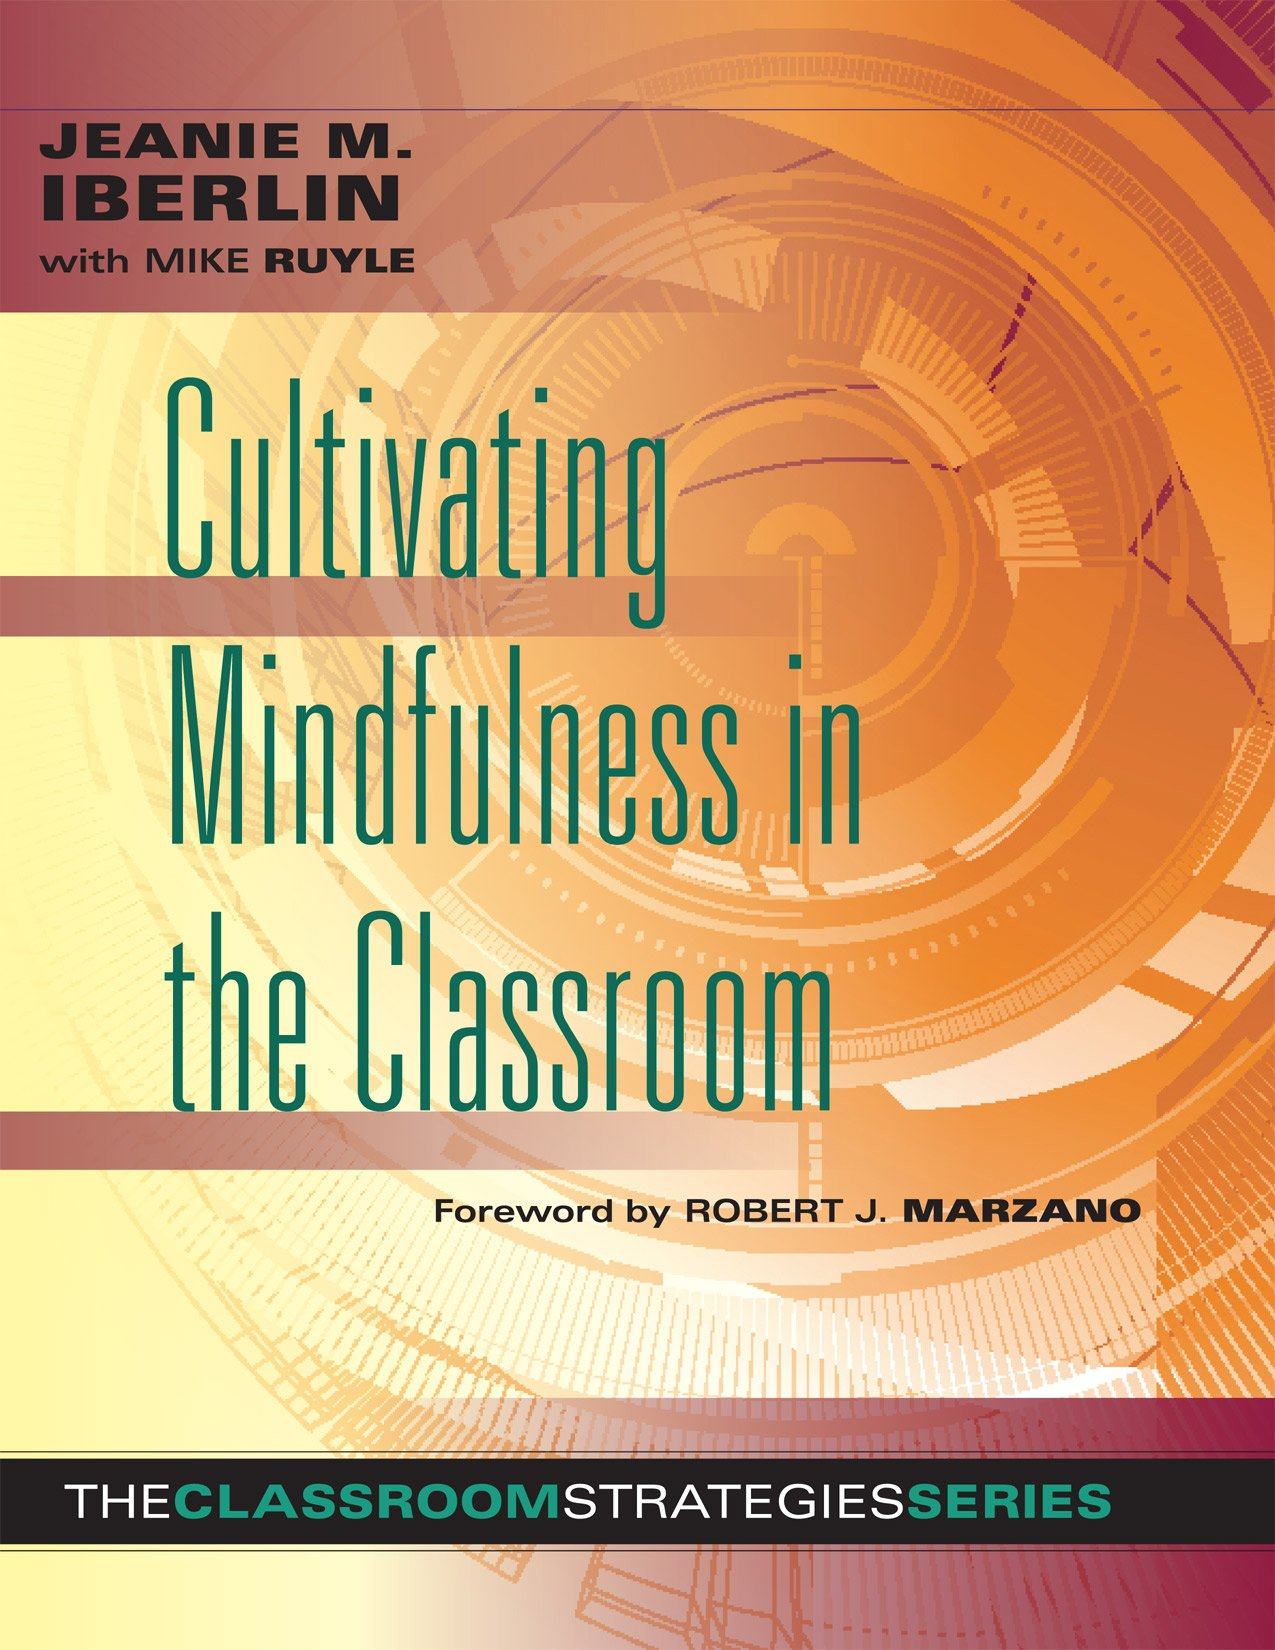 Cultivating Mindfulness in the Classroom -effective, low-cost way for educators to help students manage stress (The Classroom Strategies) pdf